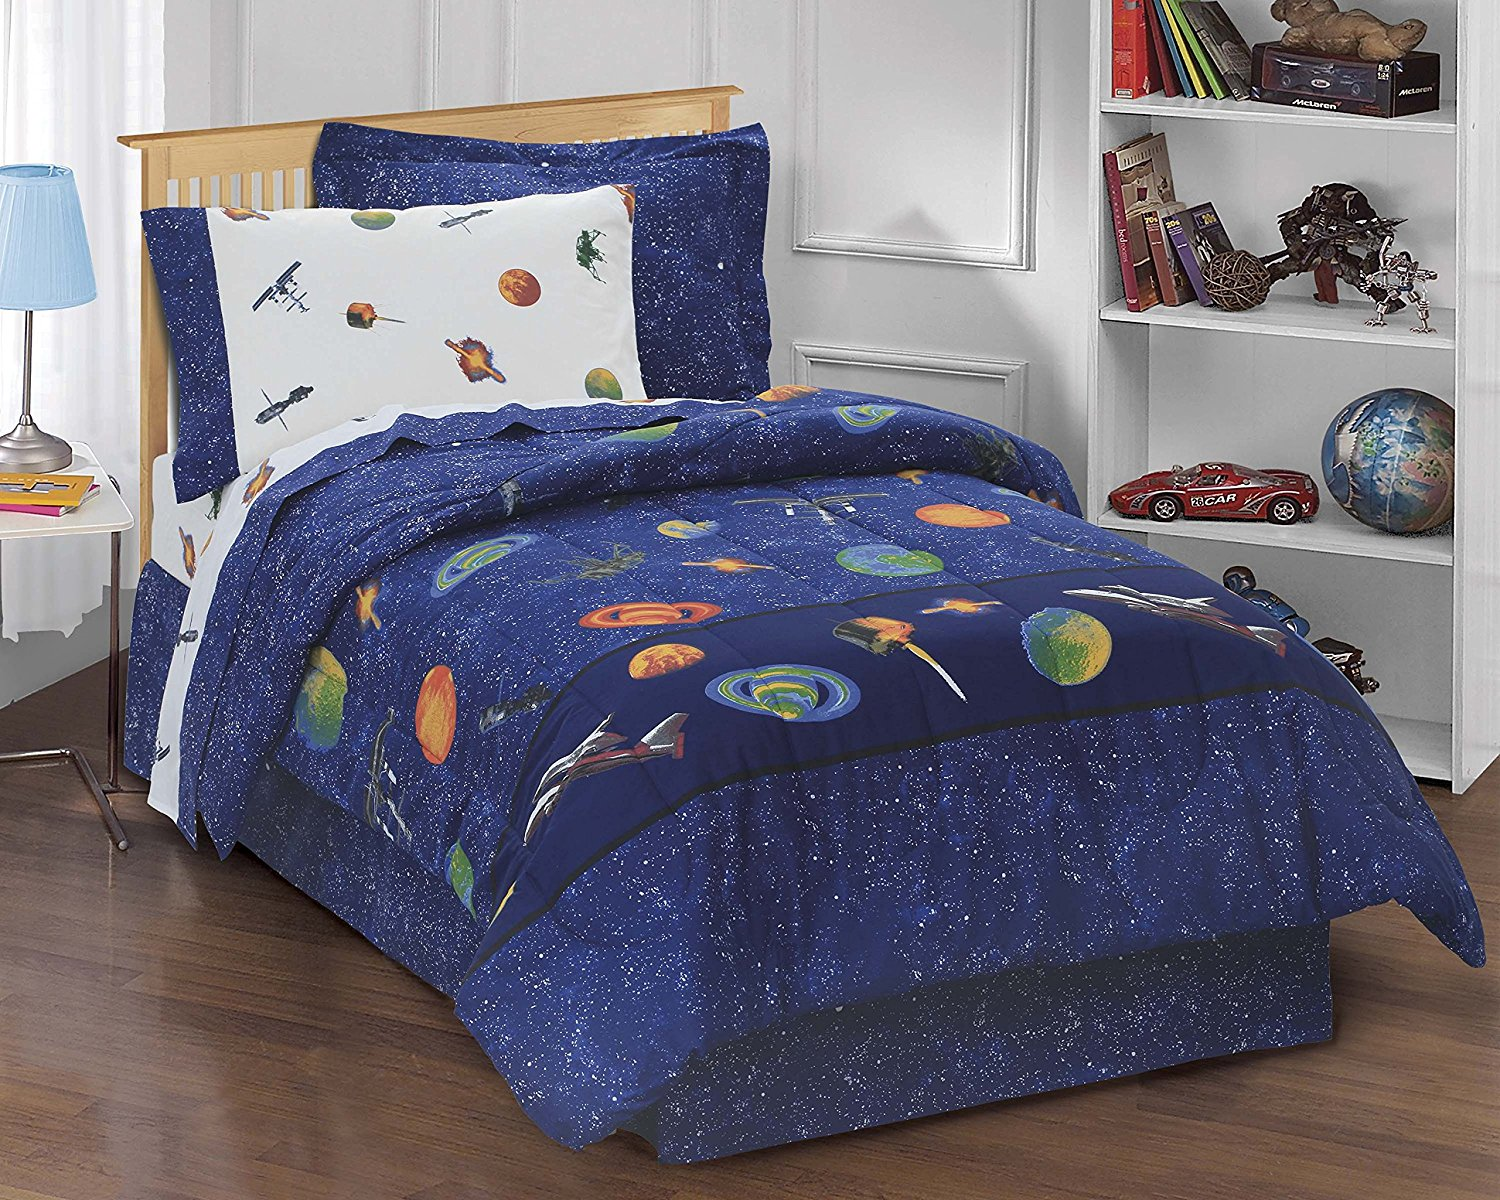 Image of: Kids Bed In A Bag